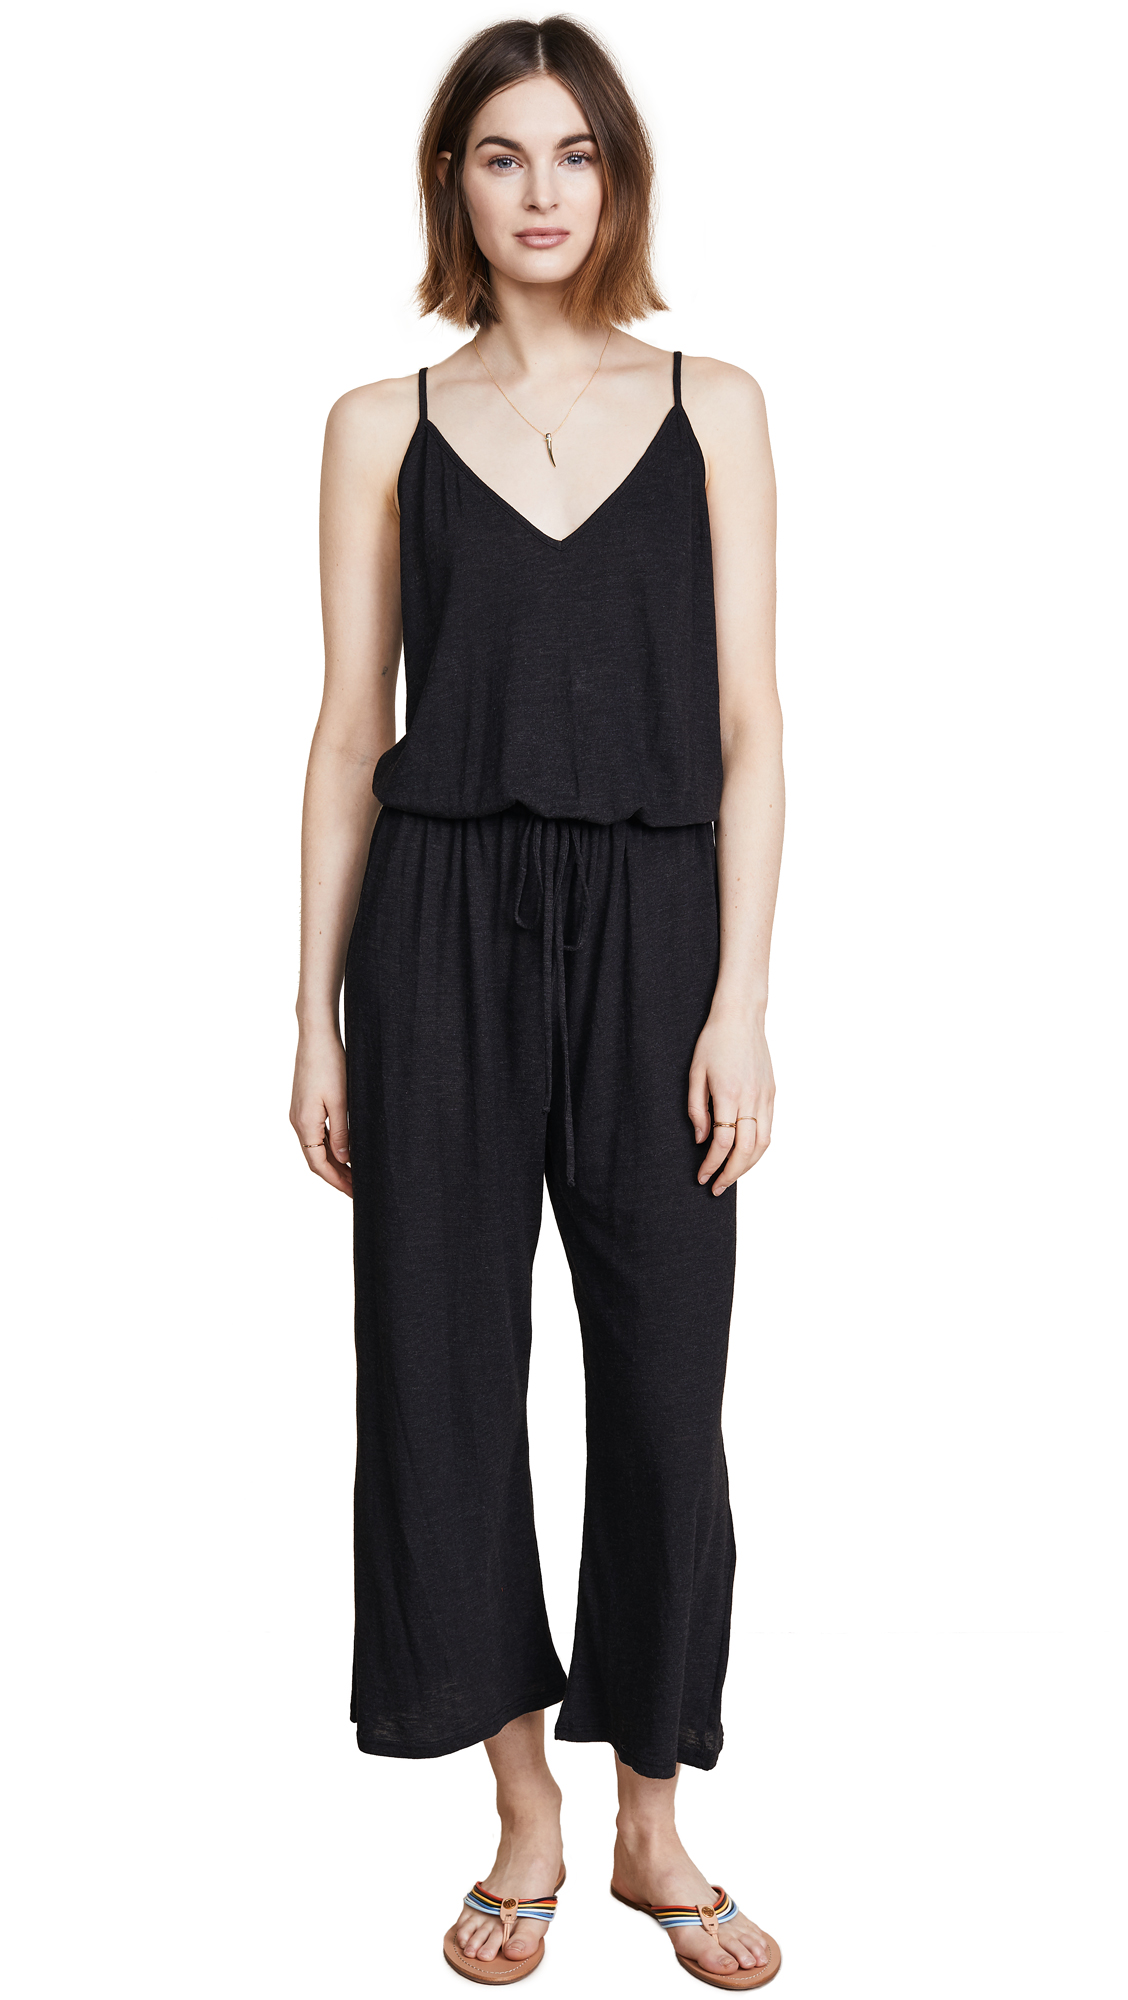 Lanston Drawstring Back Midi Jumpsuit In Black